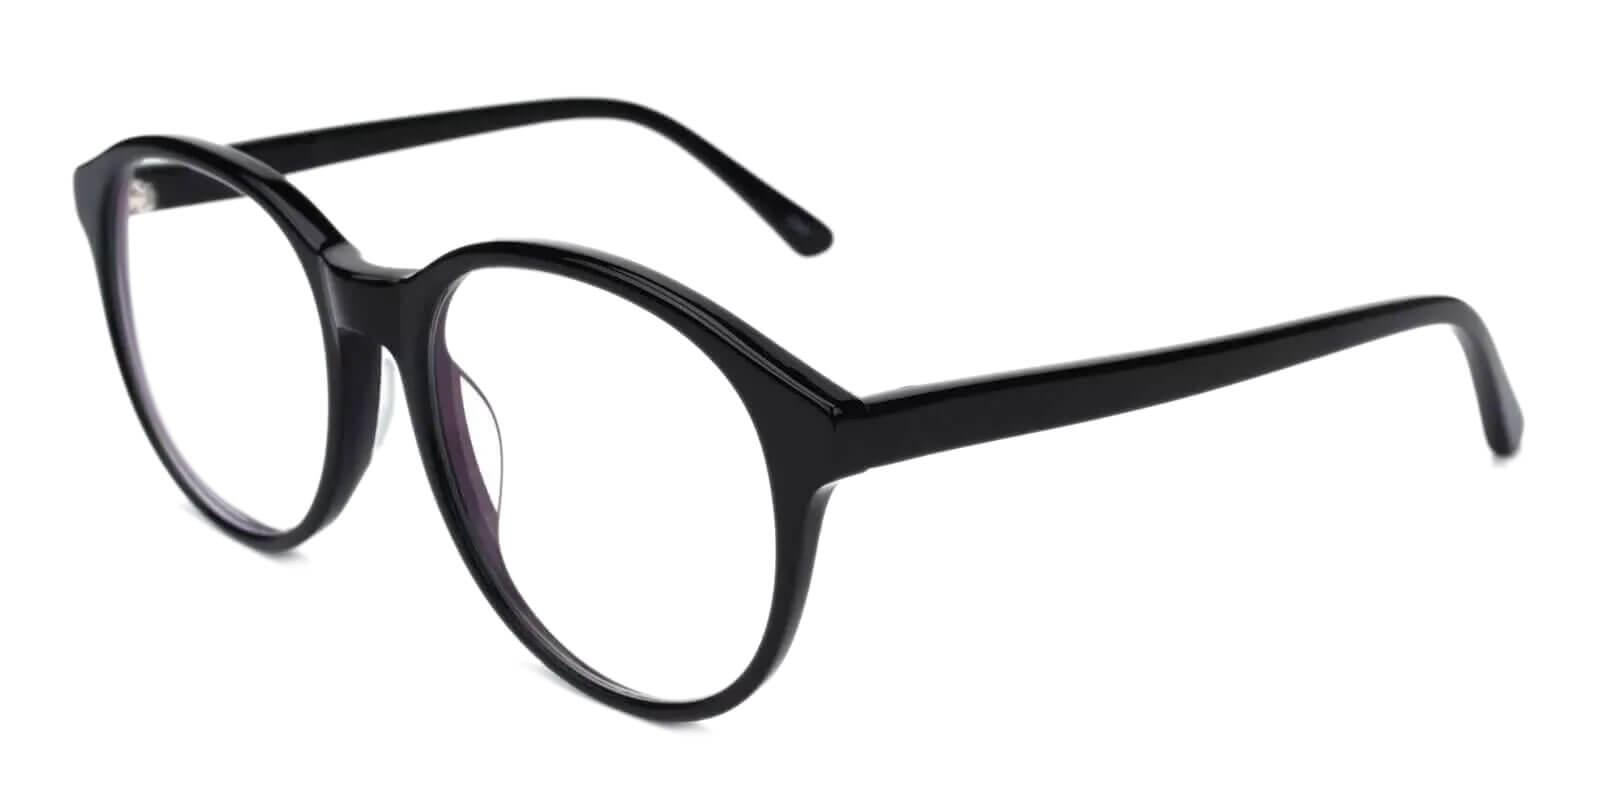 Masontown Black Acetate Eyeglasses , UniversalBridgeFit Frames from ABBE Glasses